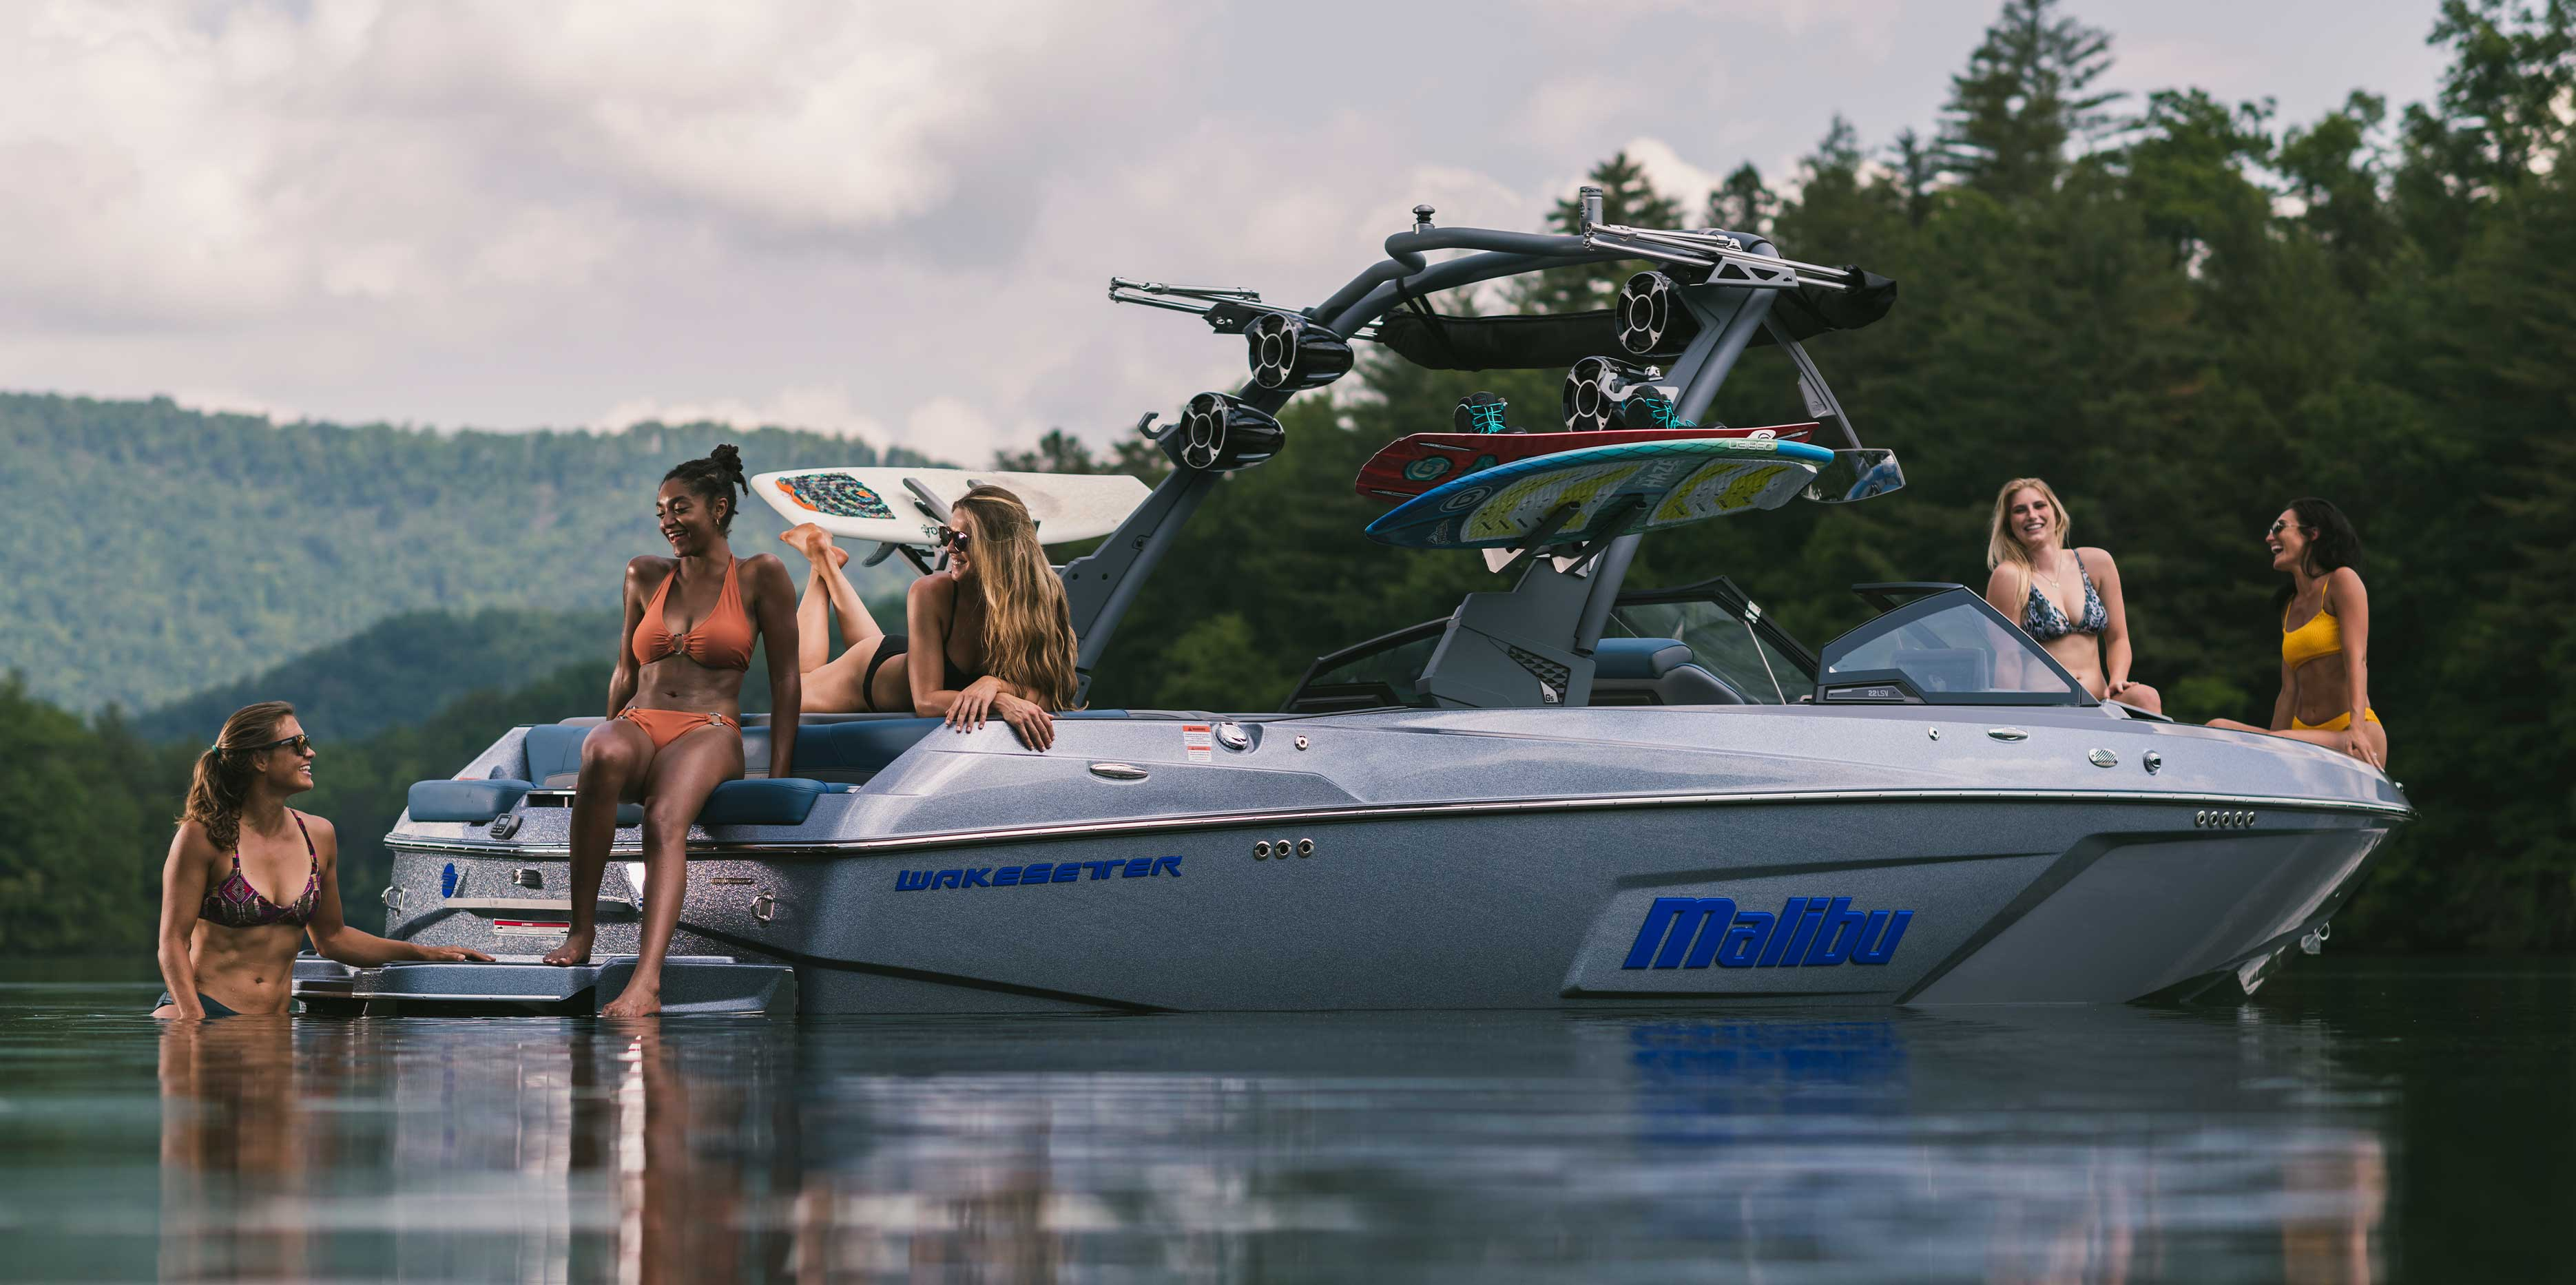 Enjoying an all-out day of fun on the water in the 22 LSV.